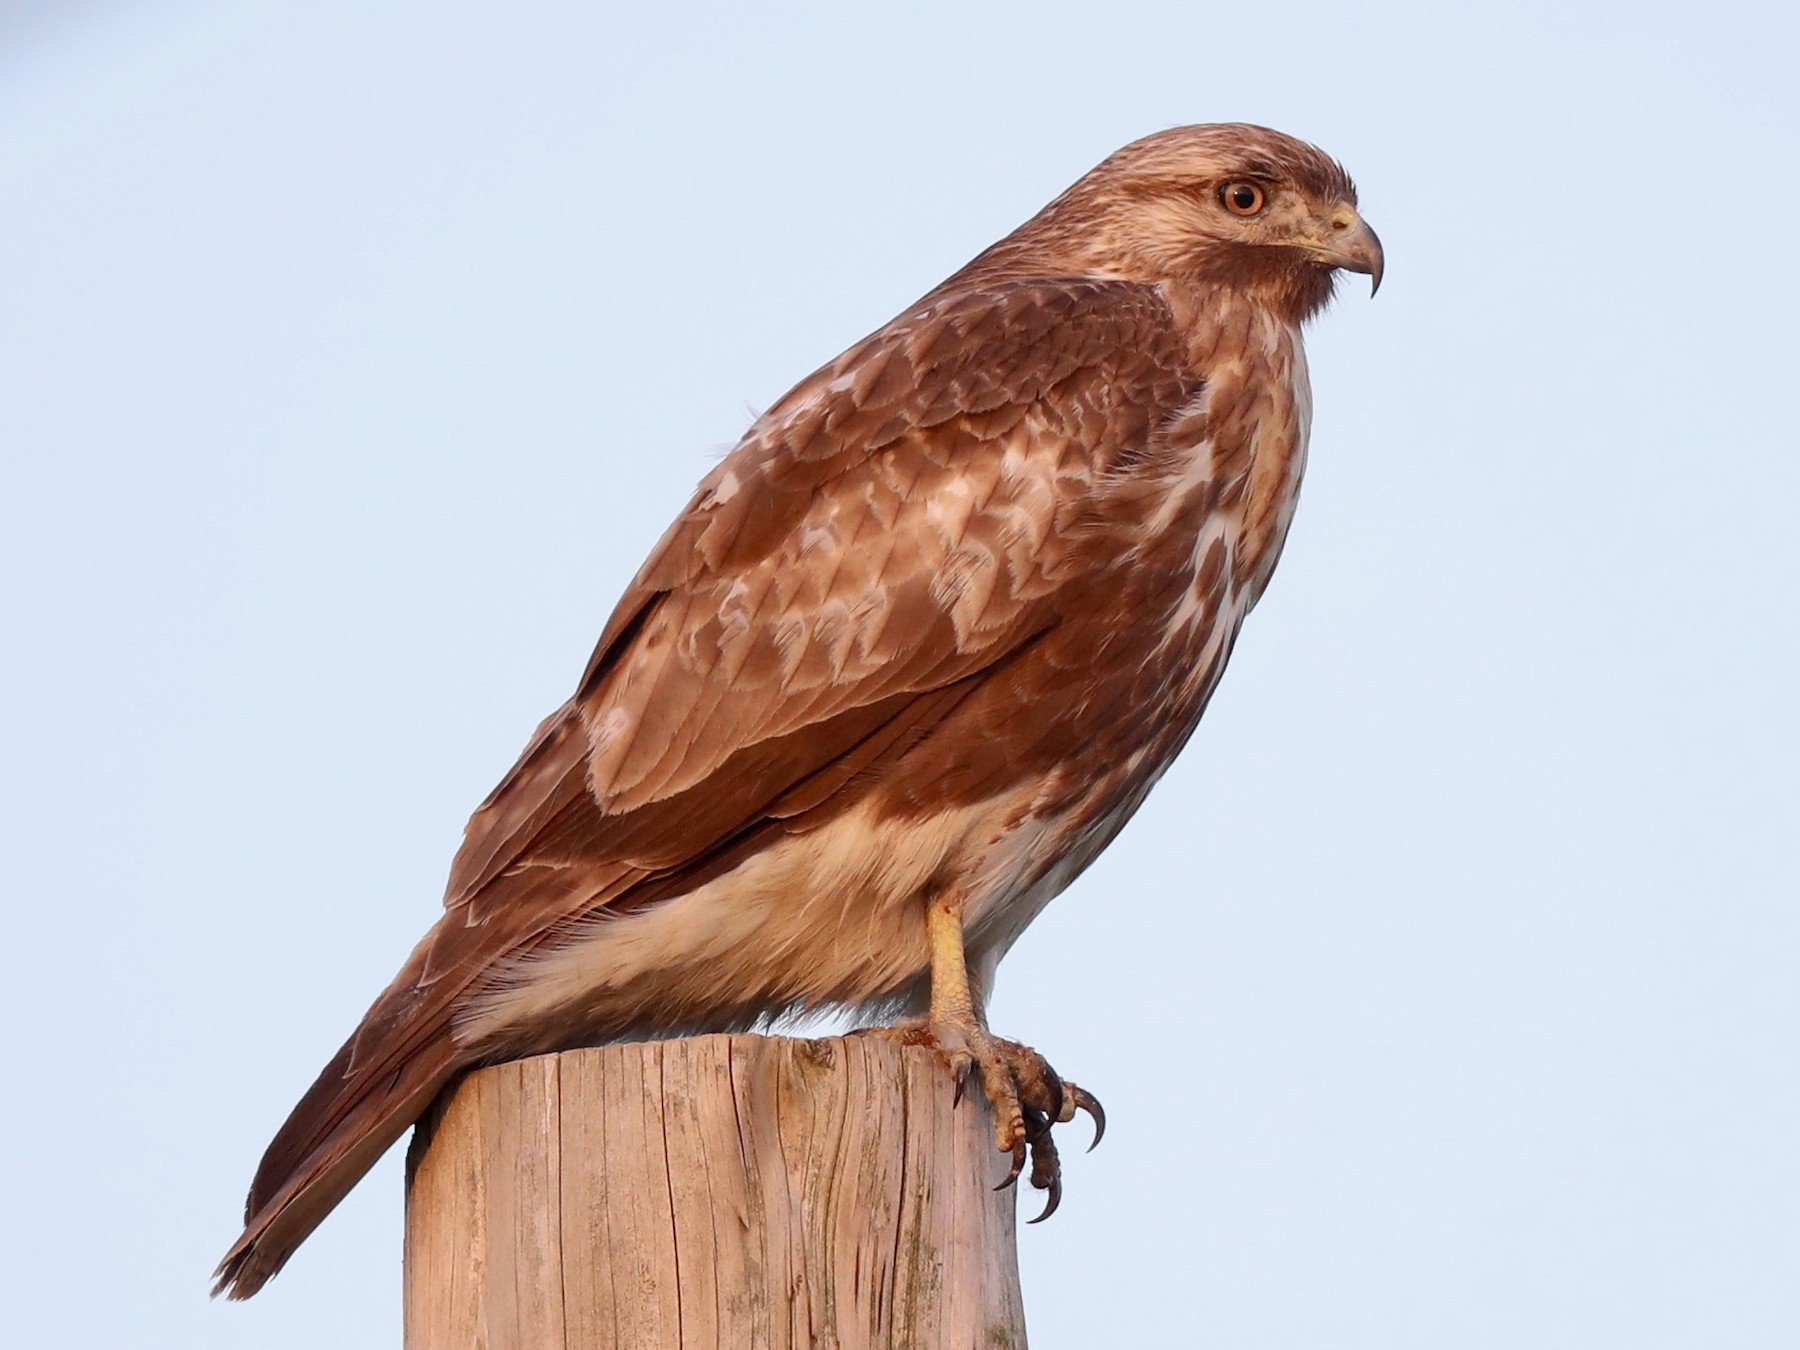 Eastern Buzzard - Ting-Wei (廷維) HUNG (洪)